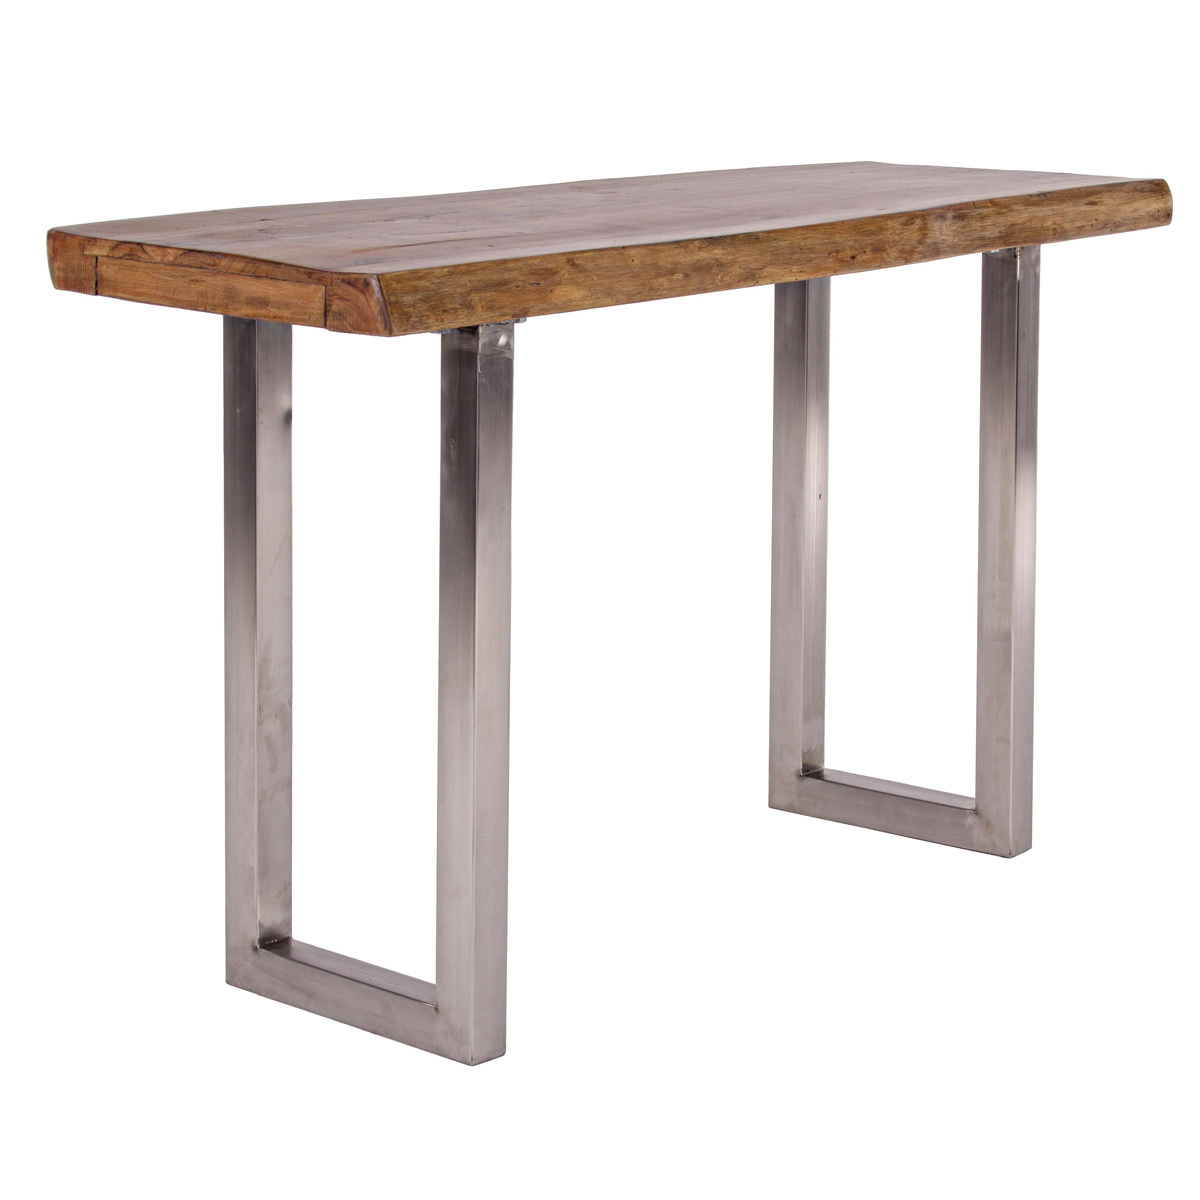 Photos 1: Bizzotto Wood and iron consoles l. 130 x 45 0746035